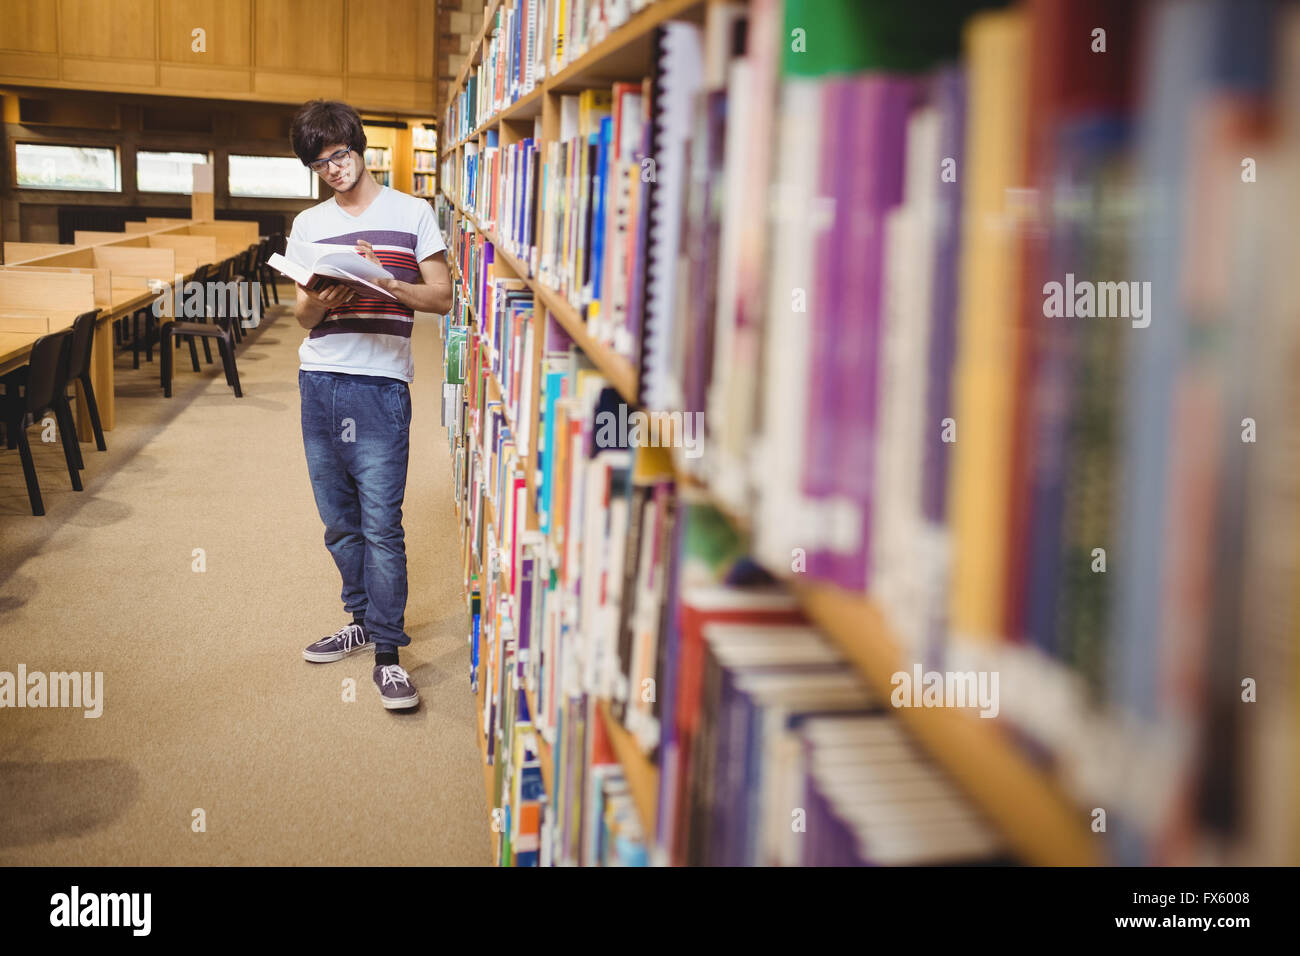 Young student reading book while standing near bookshelf - Stock Image